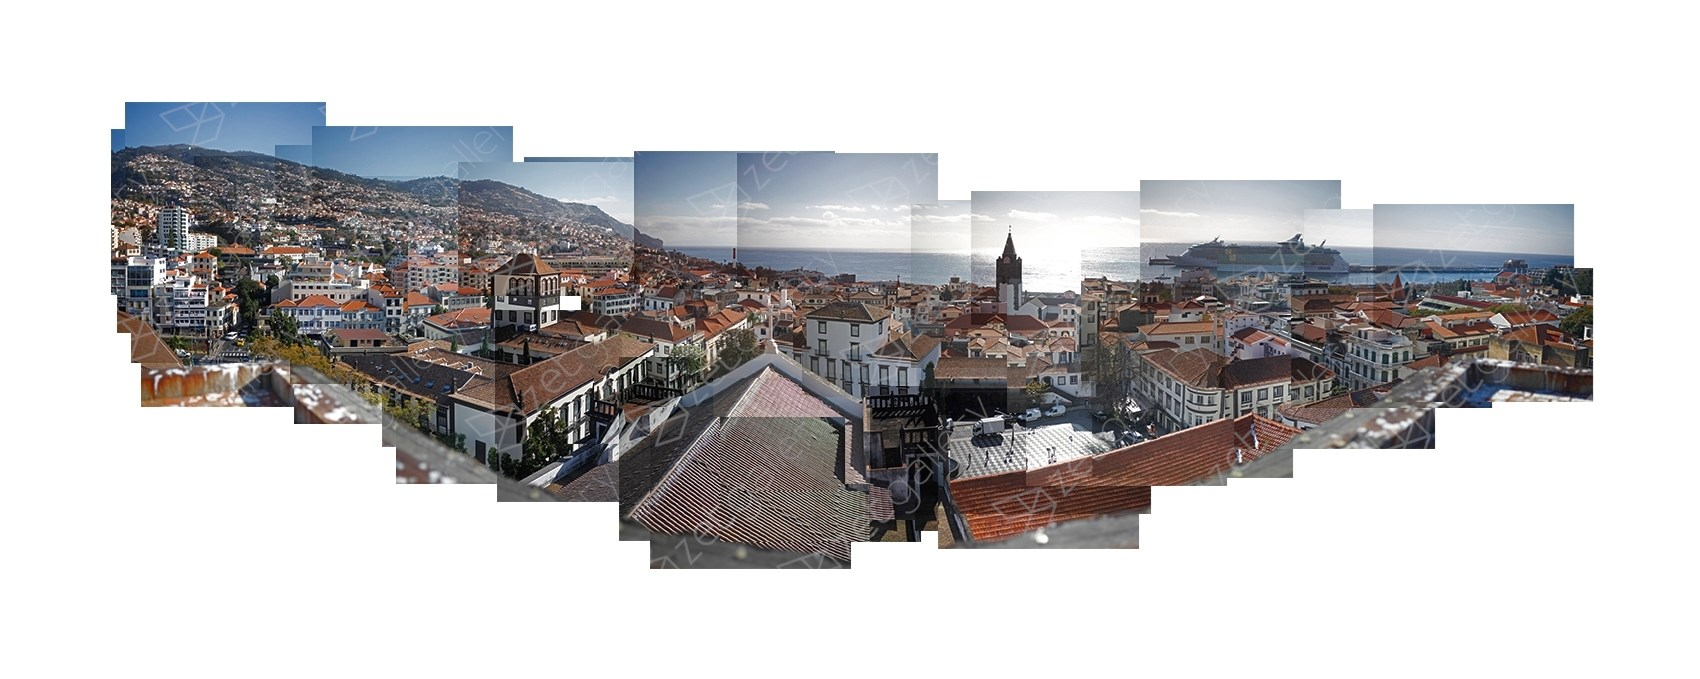 Projeto Panoramas – Funchal, original Places 0 Photography by Daniel Camacho